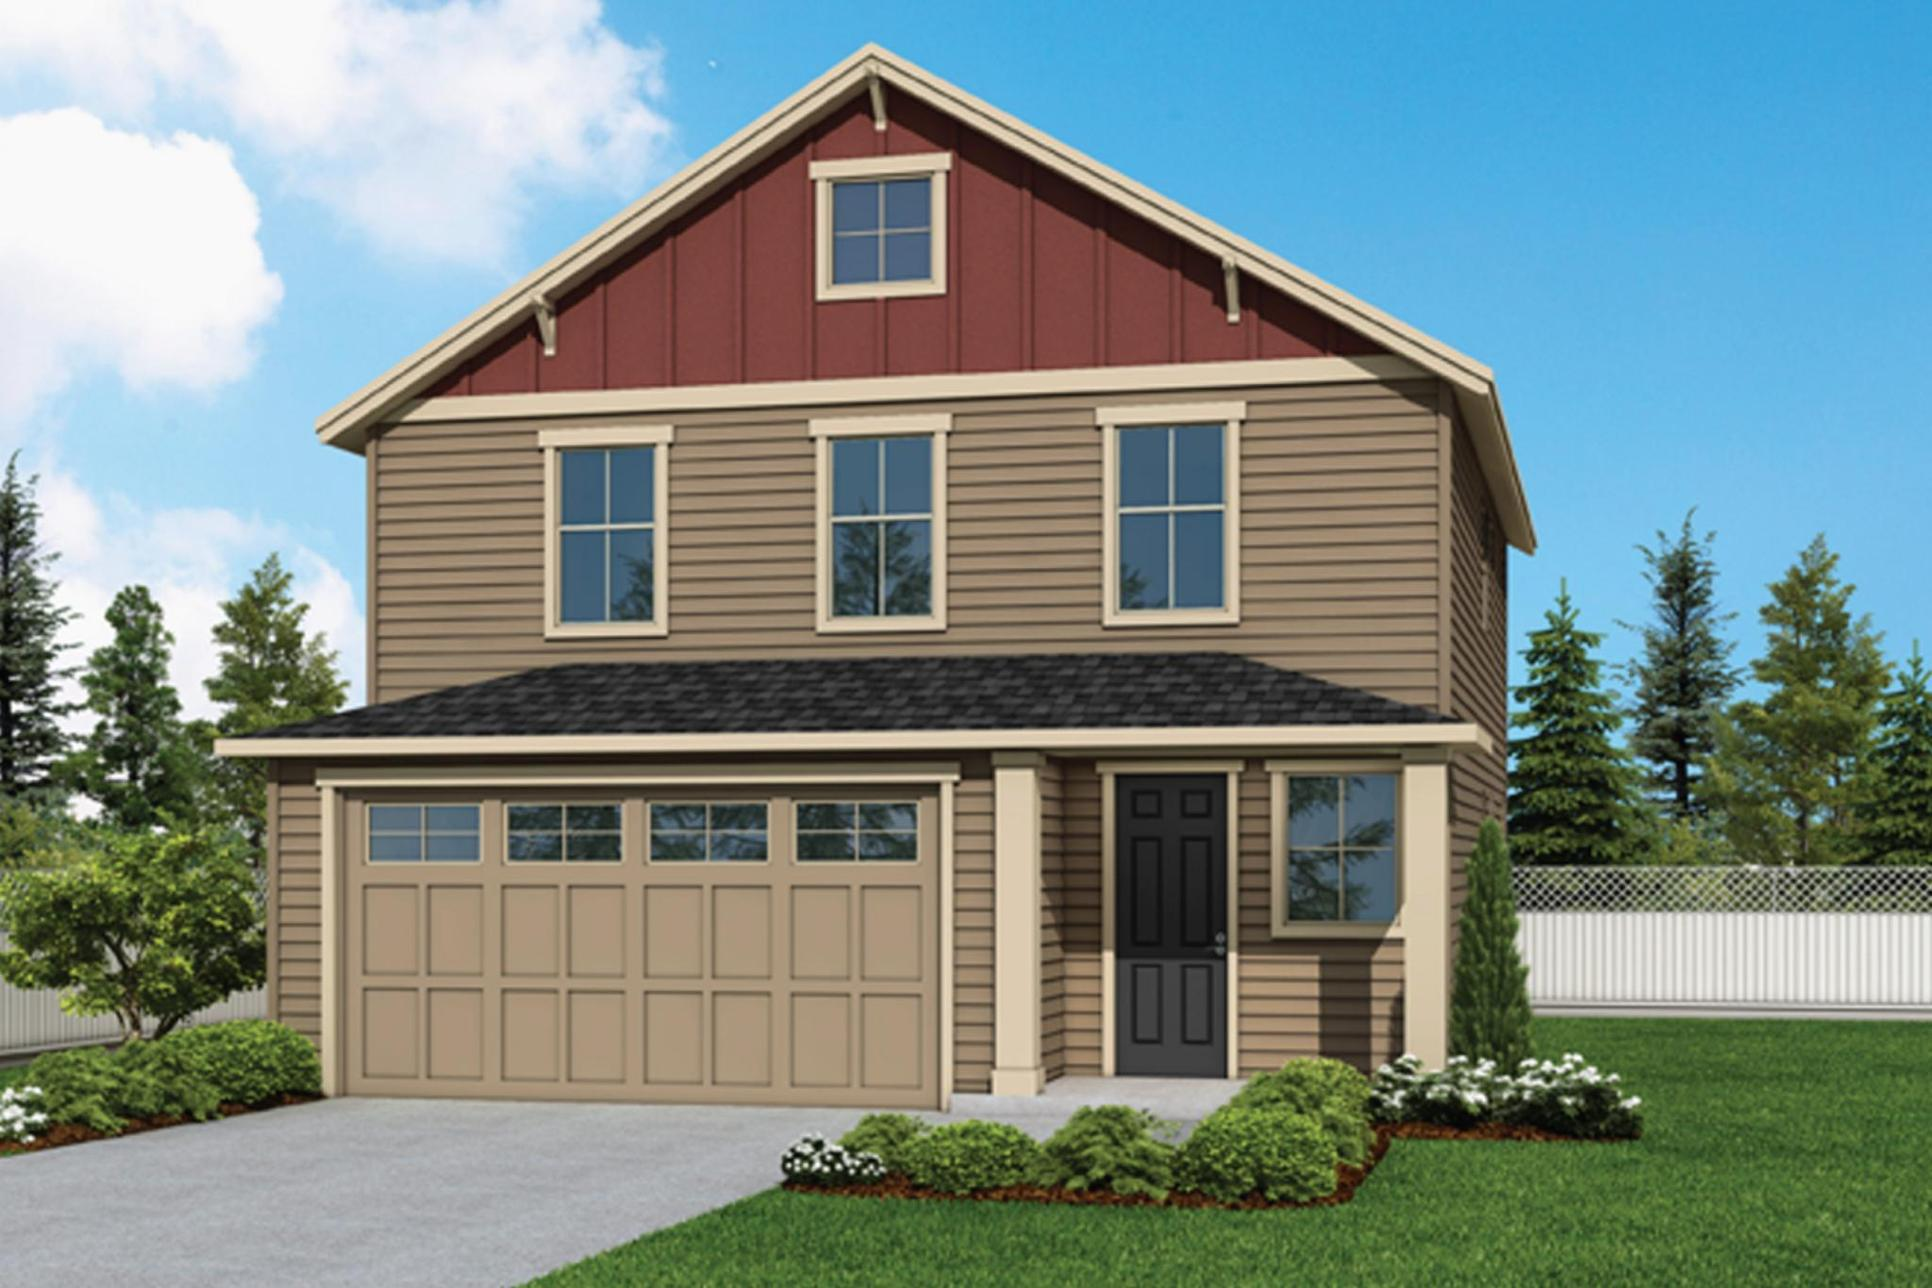 Plan 1867 Elevation 1 Rendering by Aho Construction:Plan 1867 Elevation 1